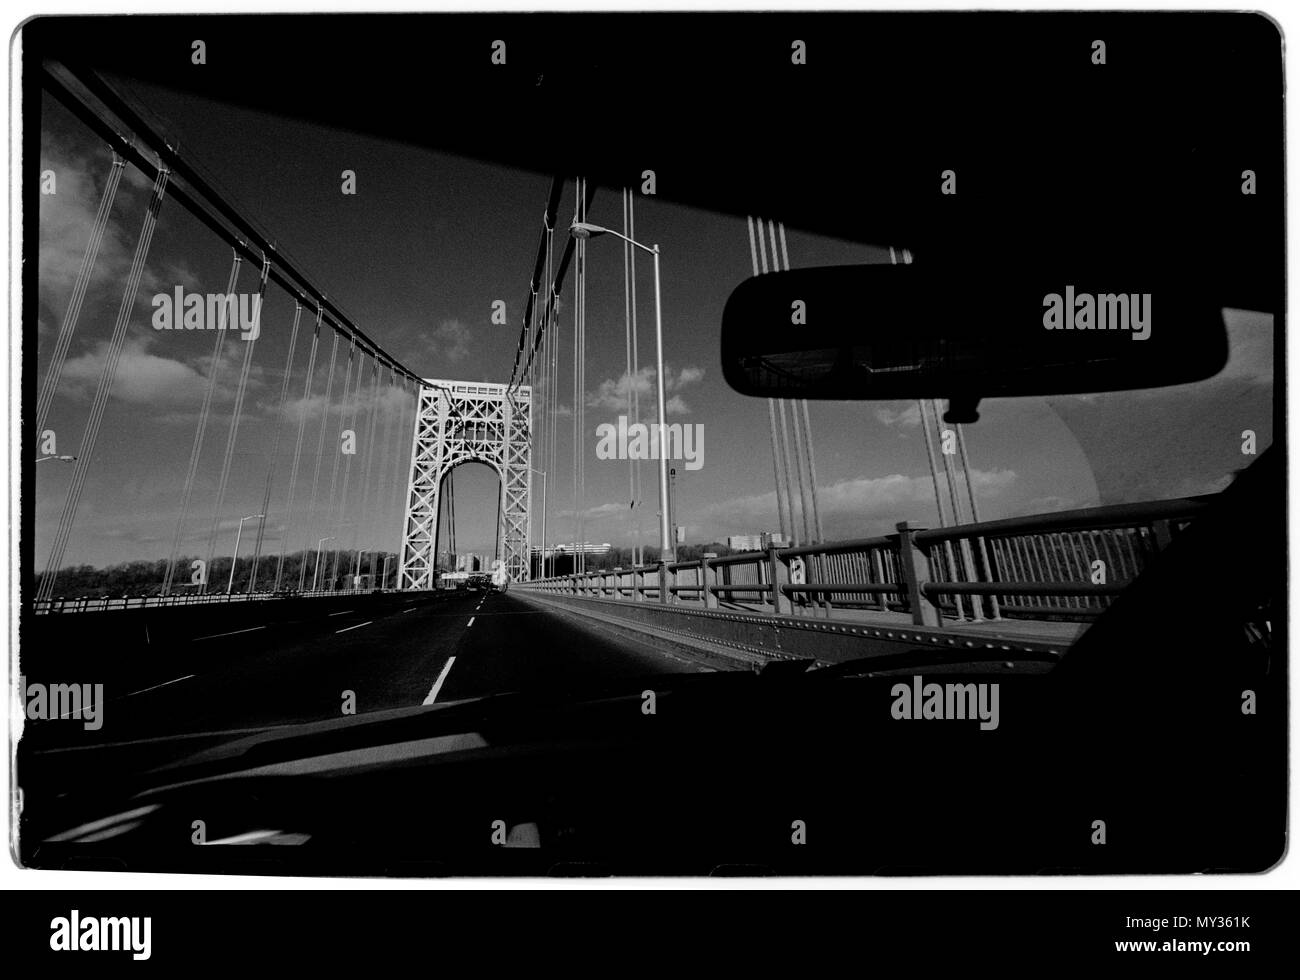 New York City USA 1988 George Washington Bridge The George Washington Bridge – known informally as the GW Bridge – is a double-decked suspension bridge spanning the Hudson River between the Washington Heights neighborhood of Manhattan in New York City and Fort Lee, New Jersey. As of 2016, the George Washington Bridge carried over 103 million vehicles per year,[8] making it the world's busiest motor vehicle bridge. It is owned by the Port Authority of New York and New Jersey, a bi-state government agency that operates infrastructure in the Port of New York area.  A bridge across the Hudson Rive - Stock Image